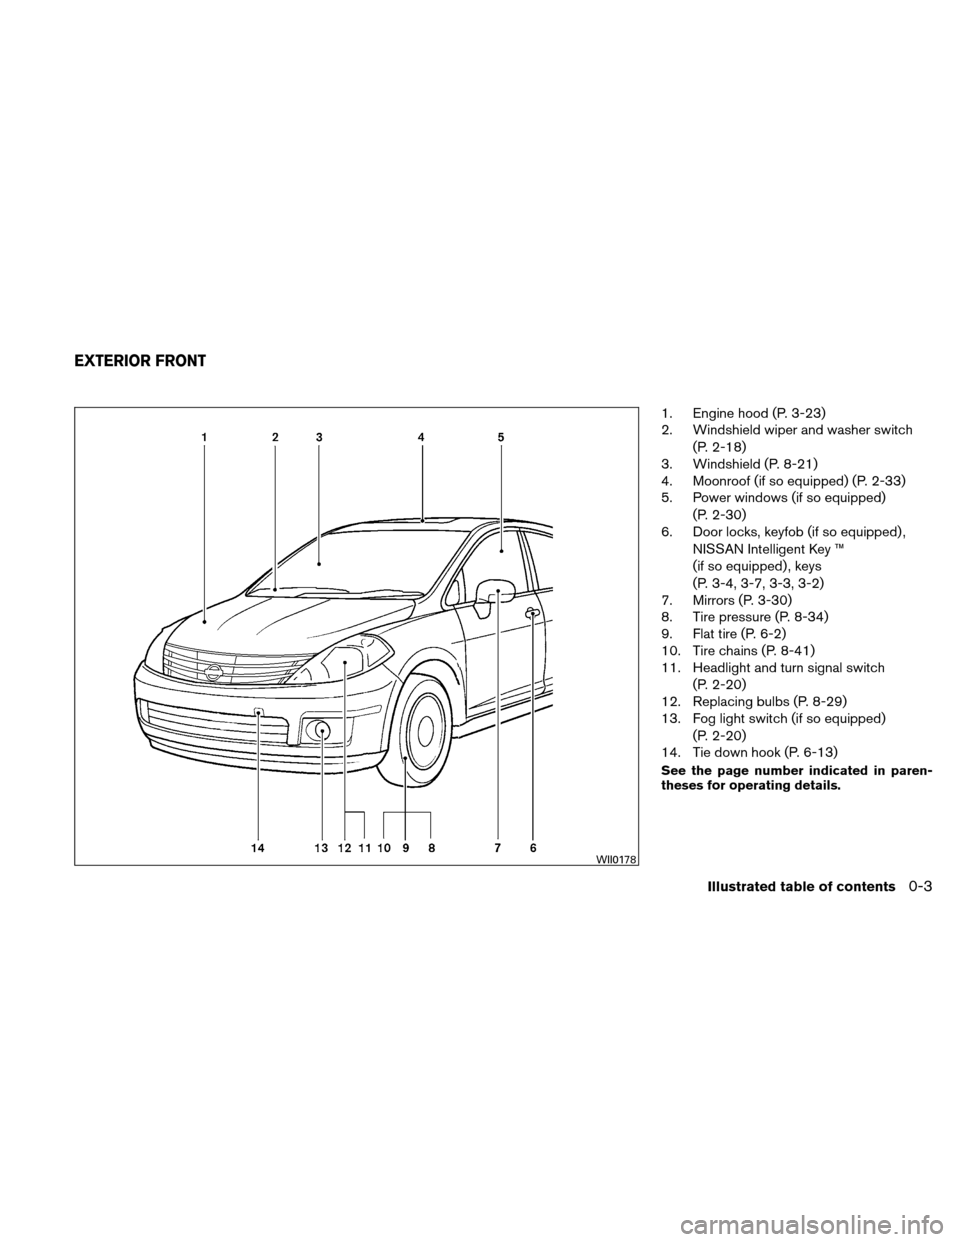 NISSAN VERSA HATCHBACK 2010 1.G Owners Manual, Page 10